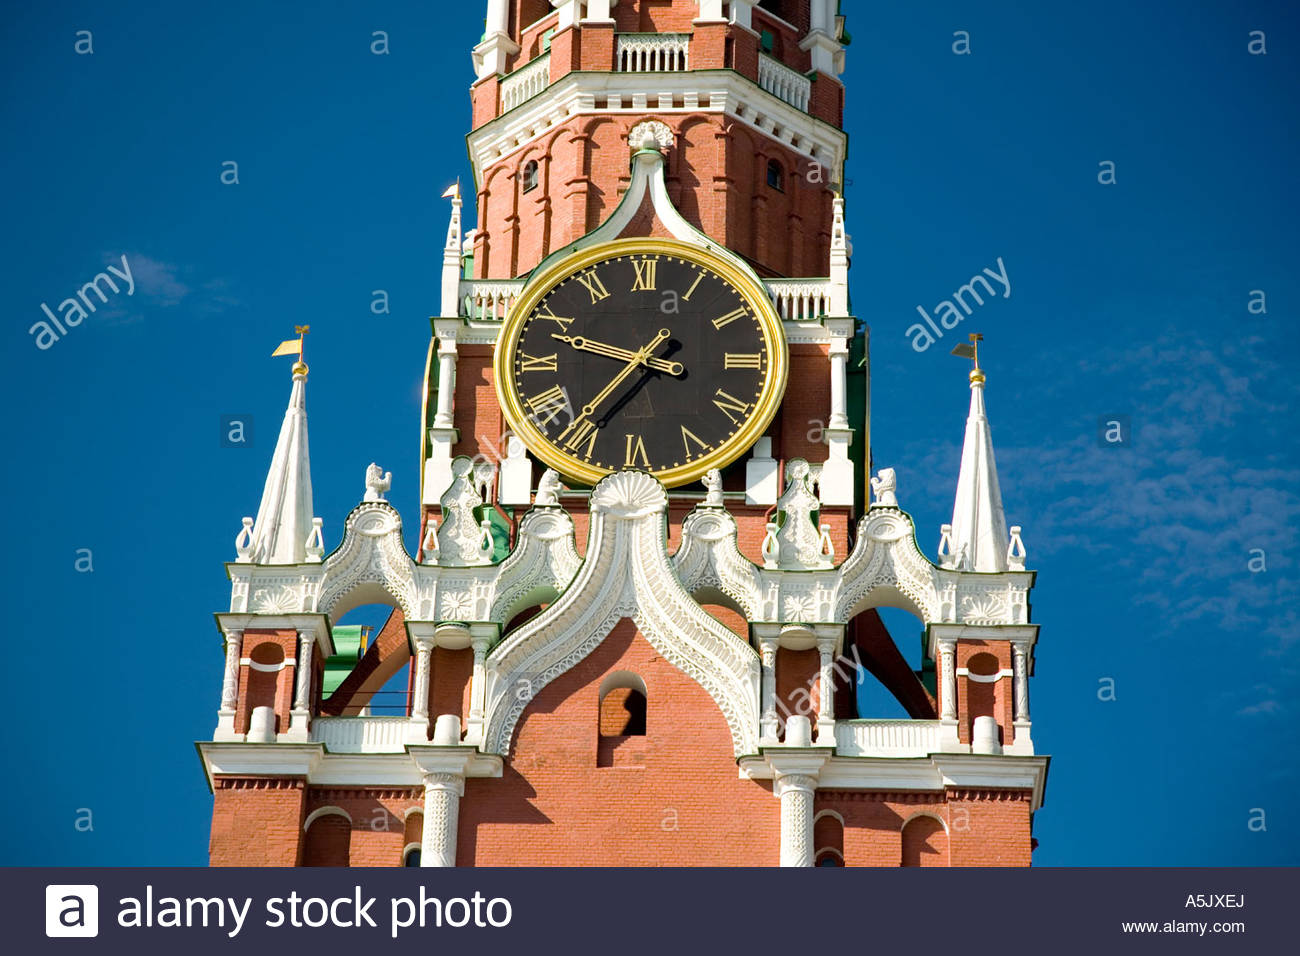 Tower of the Savior Moscow, The Savior Tower or Frolov Tower, Moscow, Russia, East Europe ...